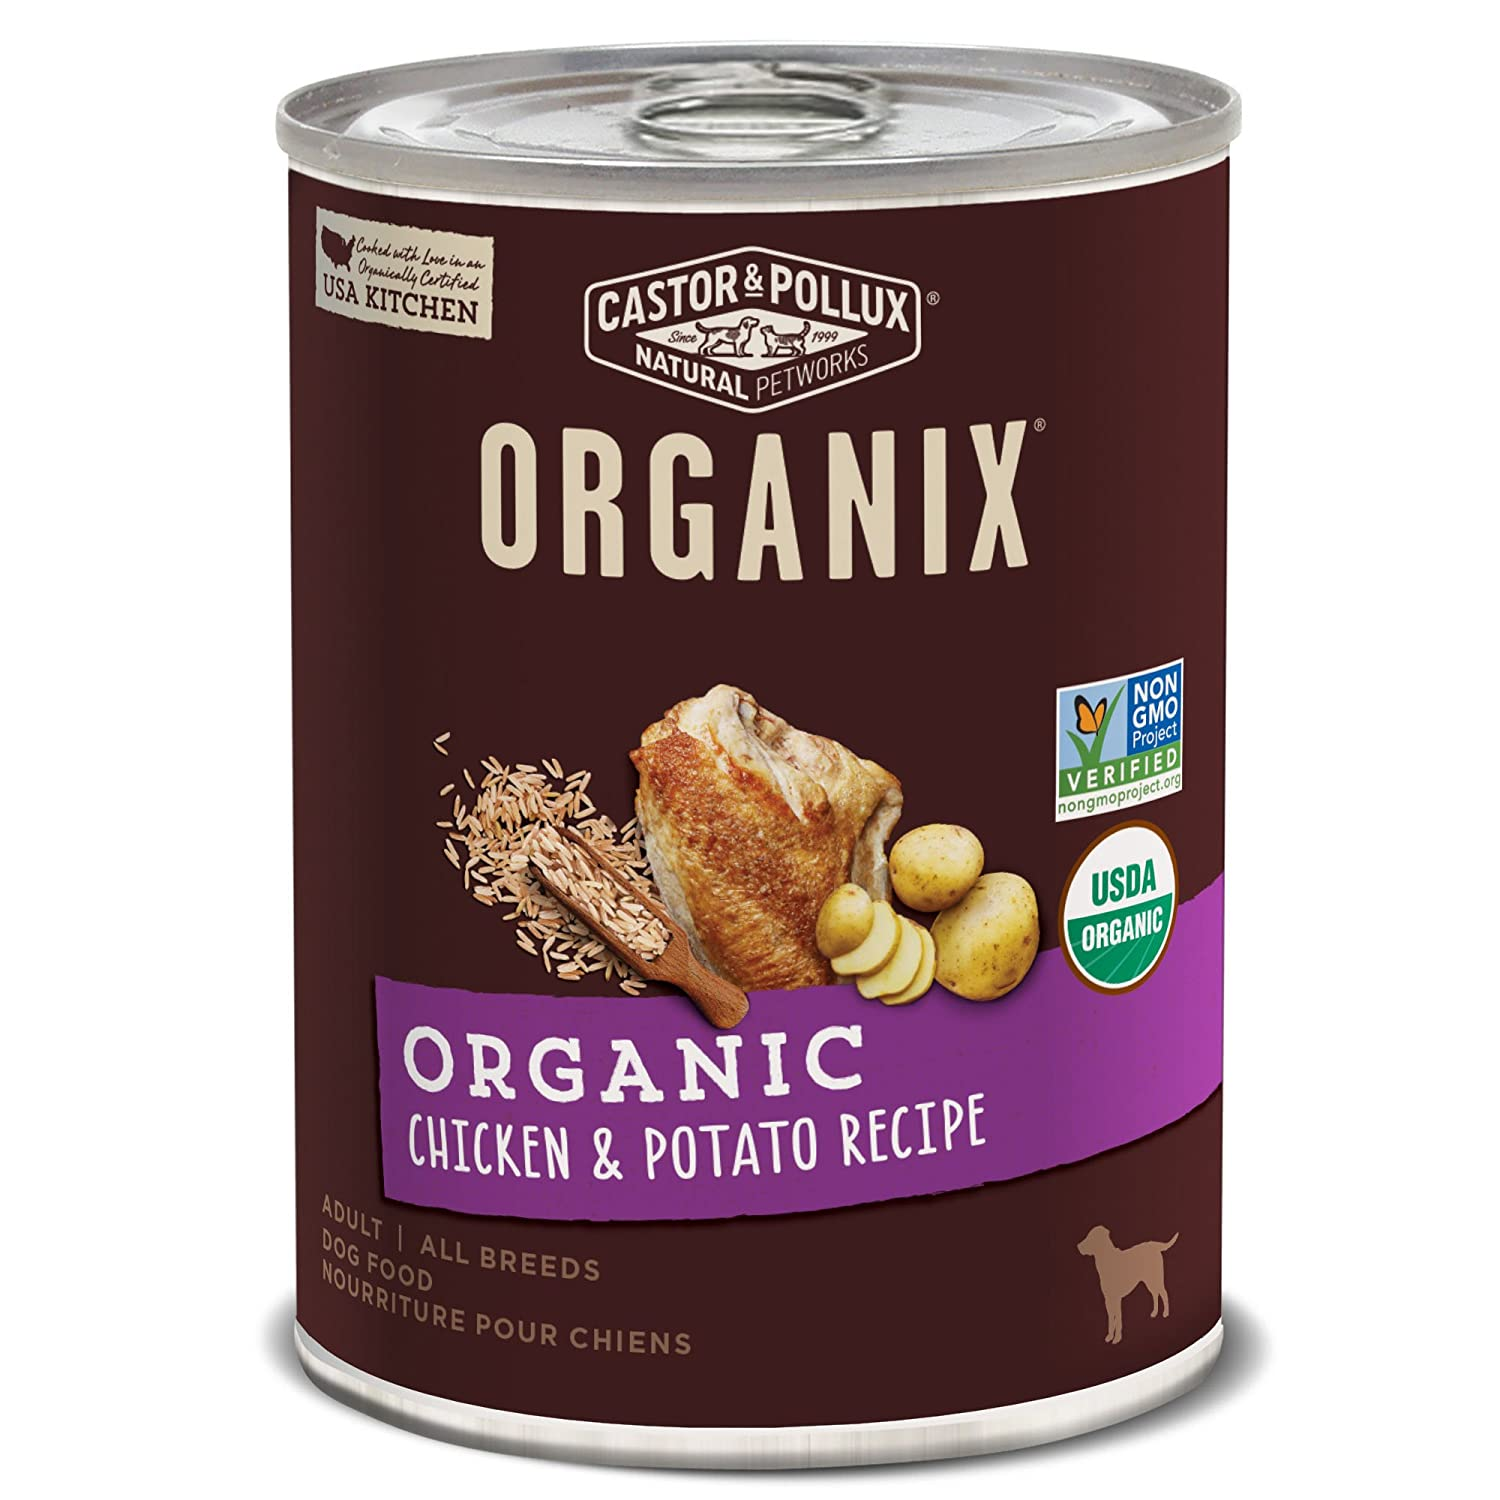 Castor Pollux Organix Organic Canned Dog Food, 12 count 12.7 oz